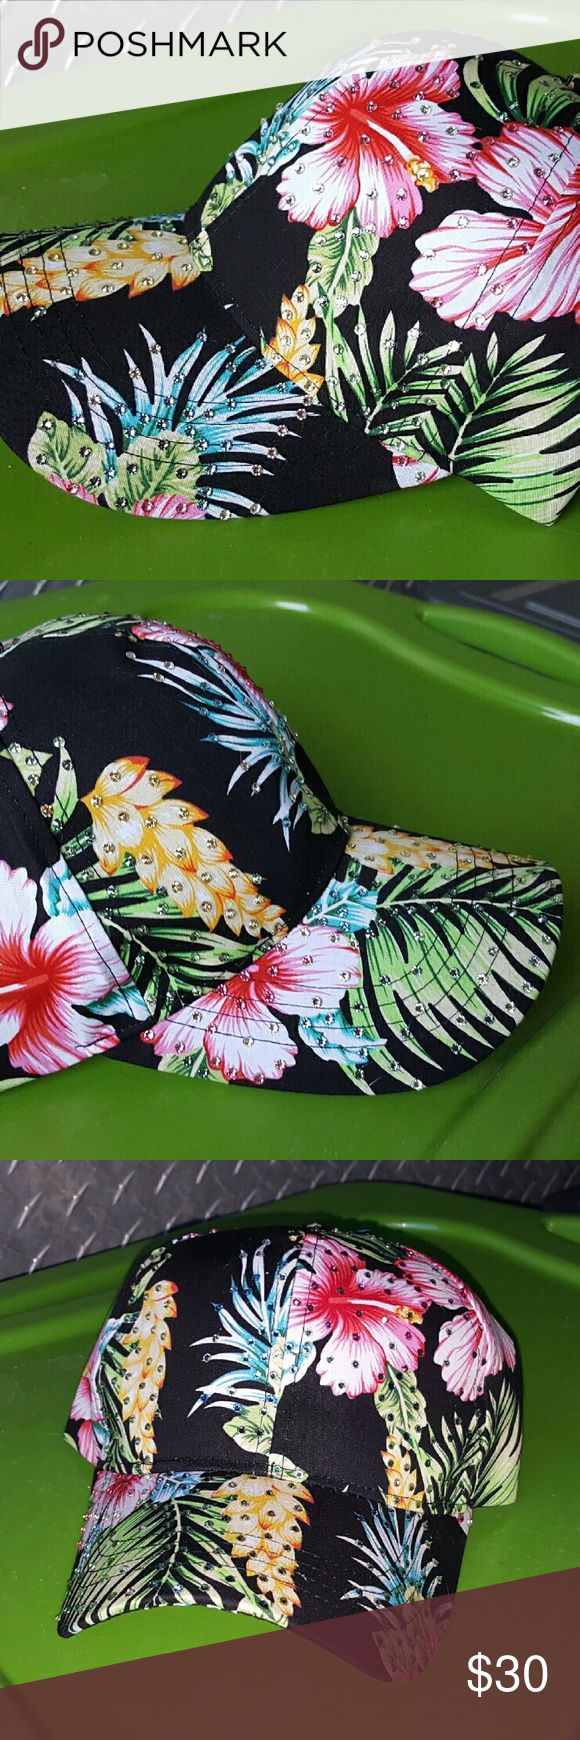 NEW Custom Black Hawaiian Hat LOADED with BLING New Custom 1 of a kind  Black Hawaiian Hat LOADED with Genuine swarovski crystals  Hand Crystalled  Adjustable Buckle back closure Accessories Hats